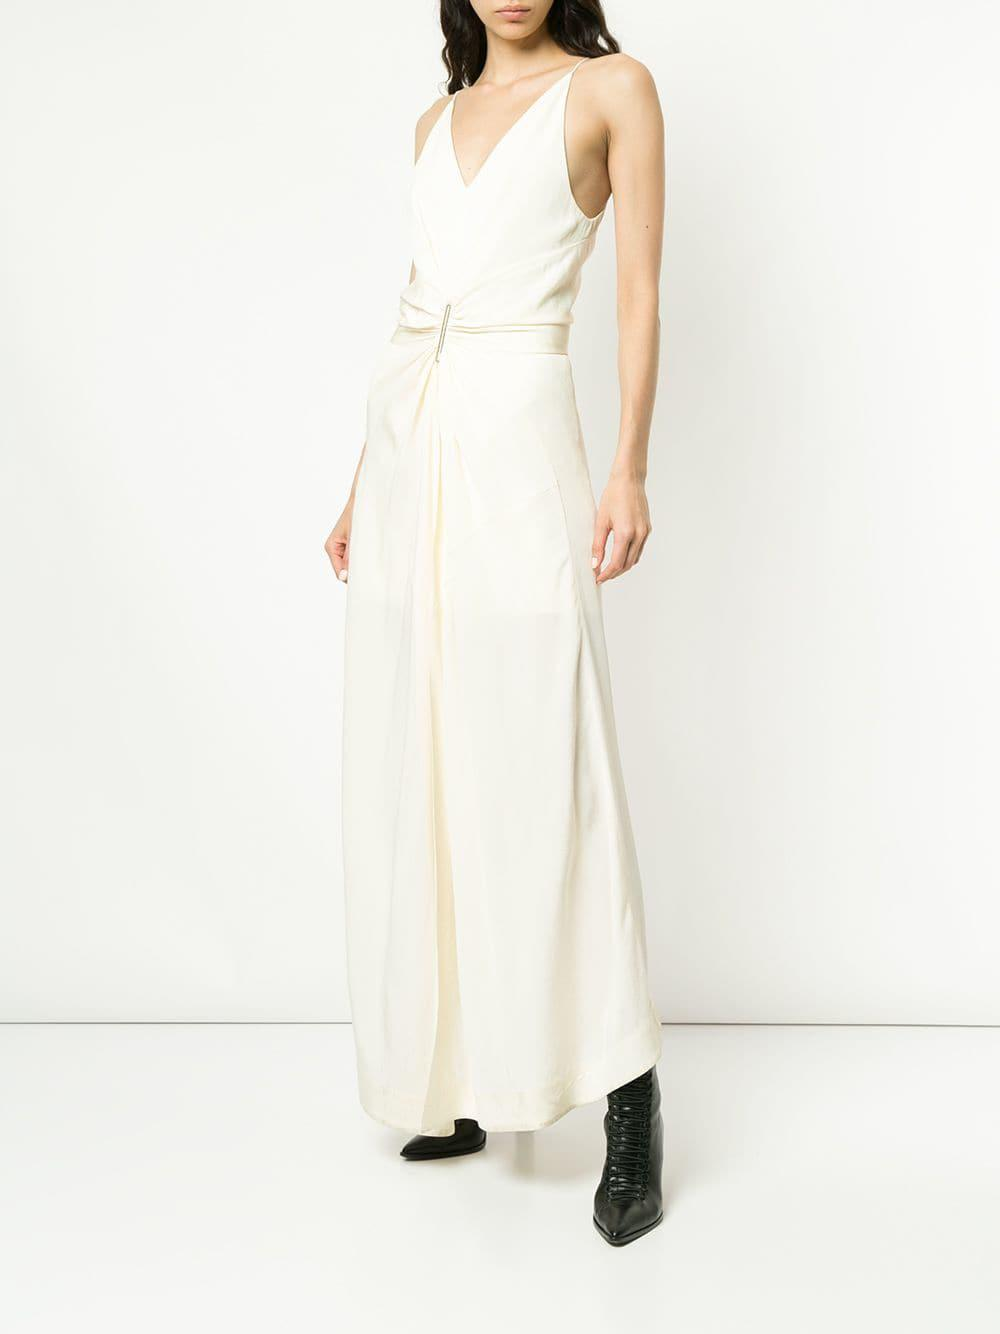 38802ce860 Dion Lee Cinched Plisse Dress in White - Lyst